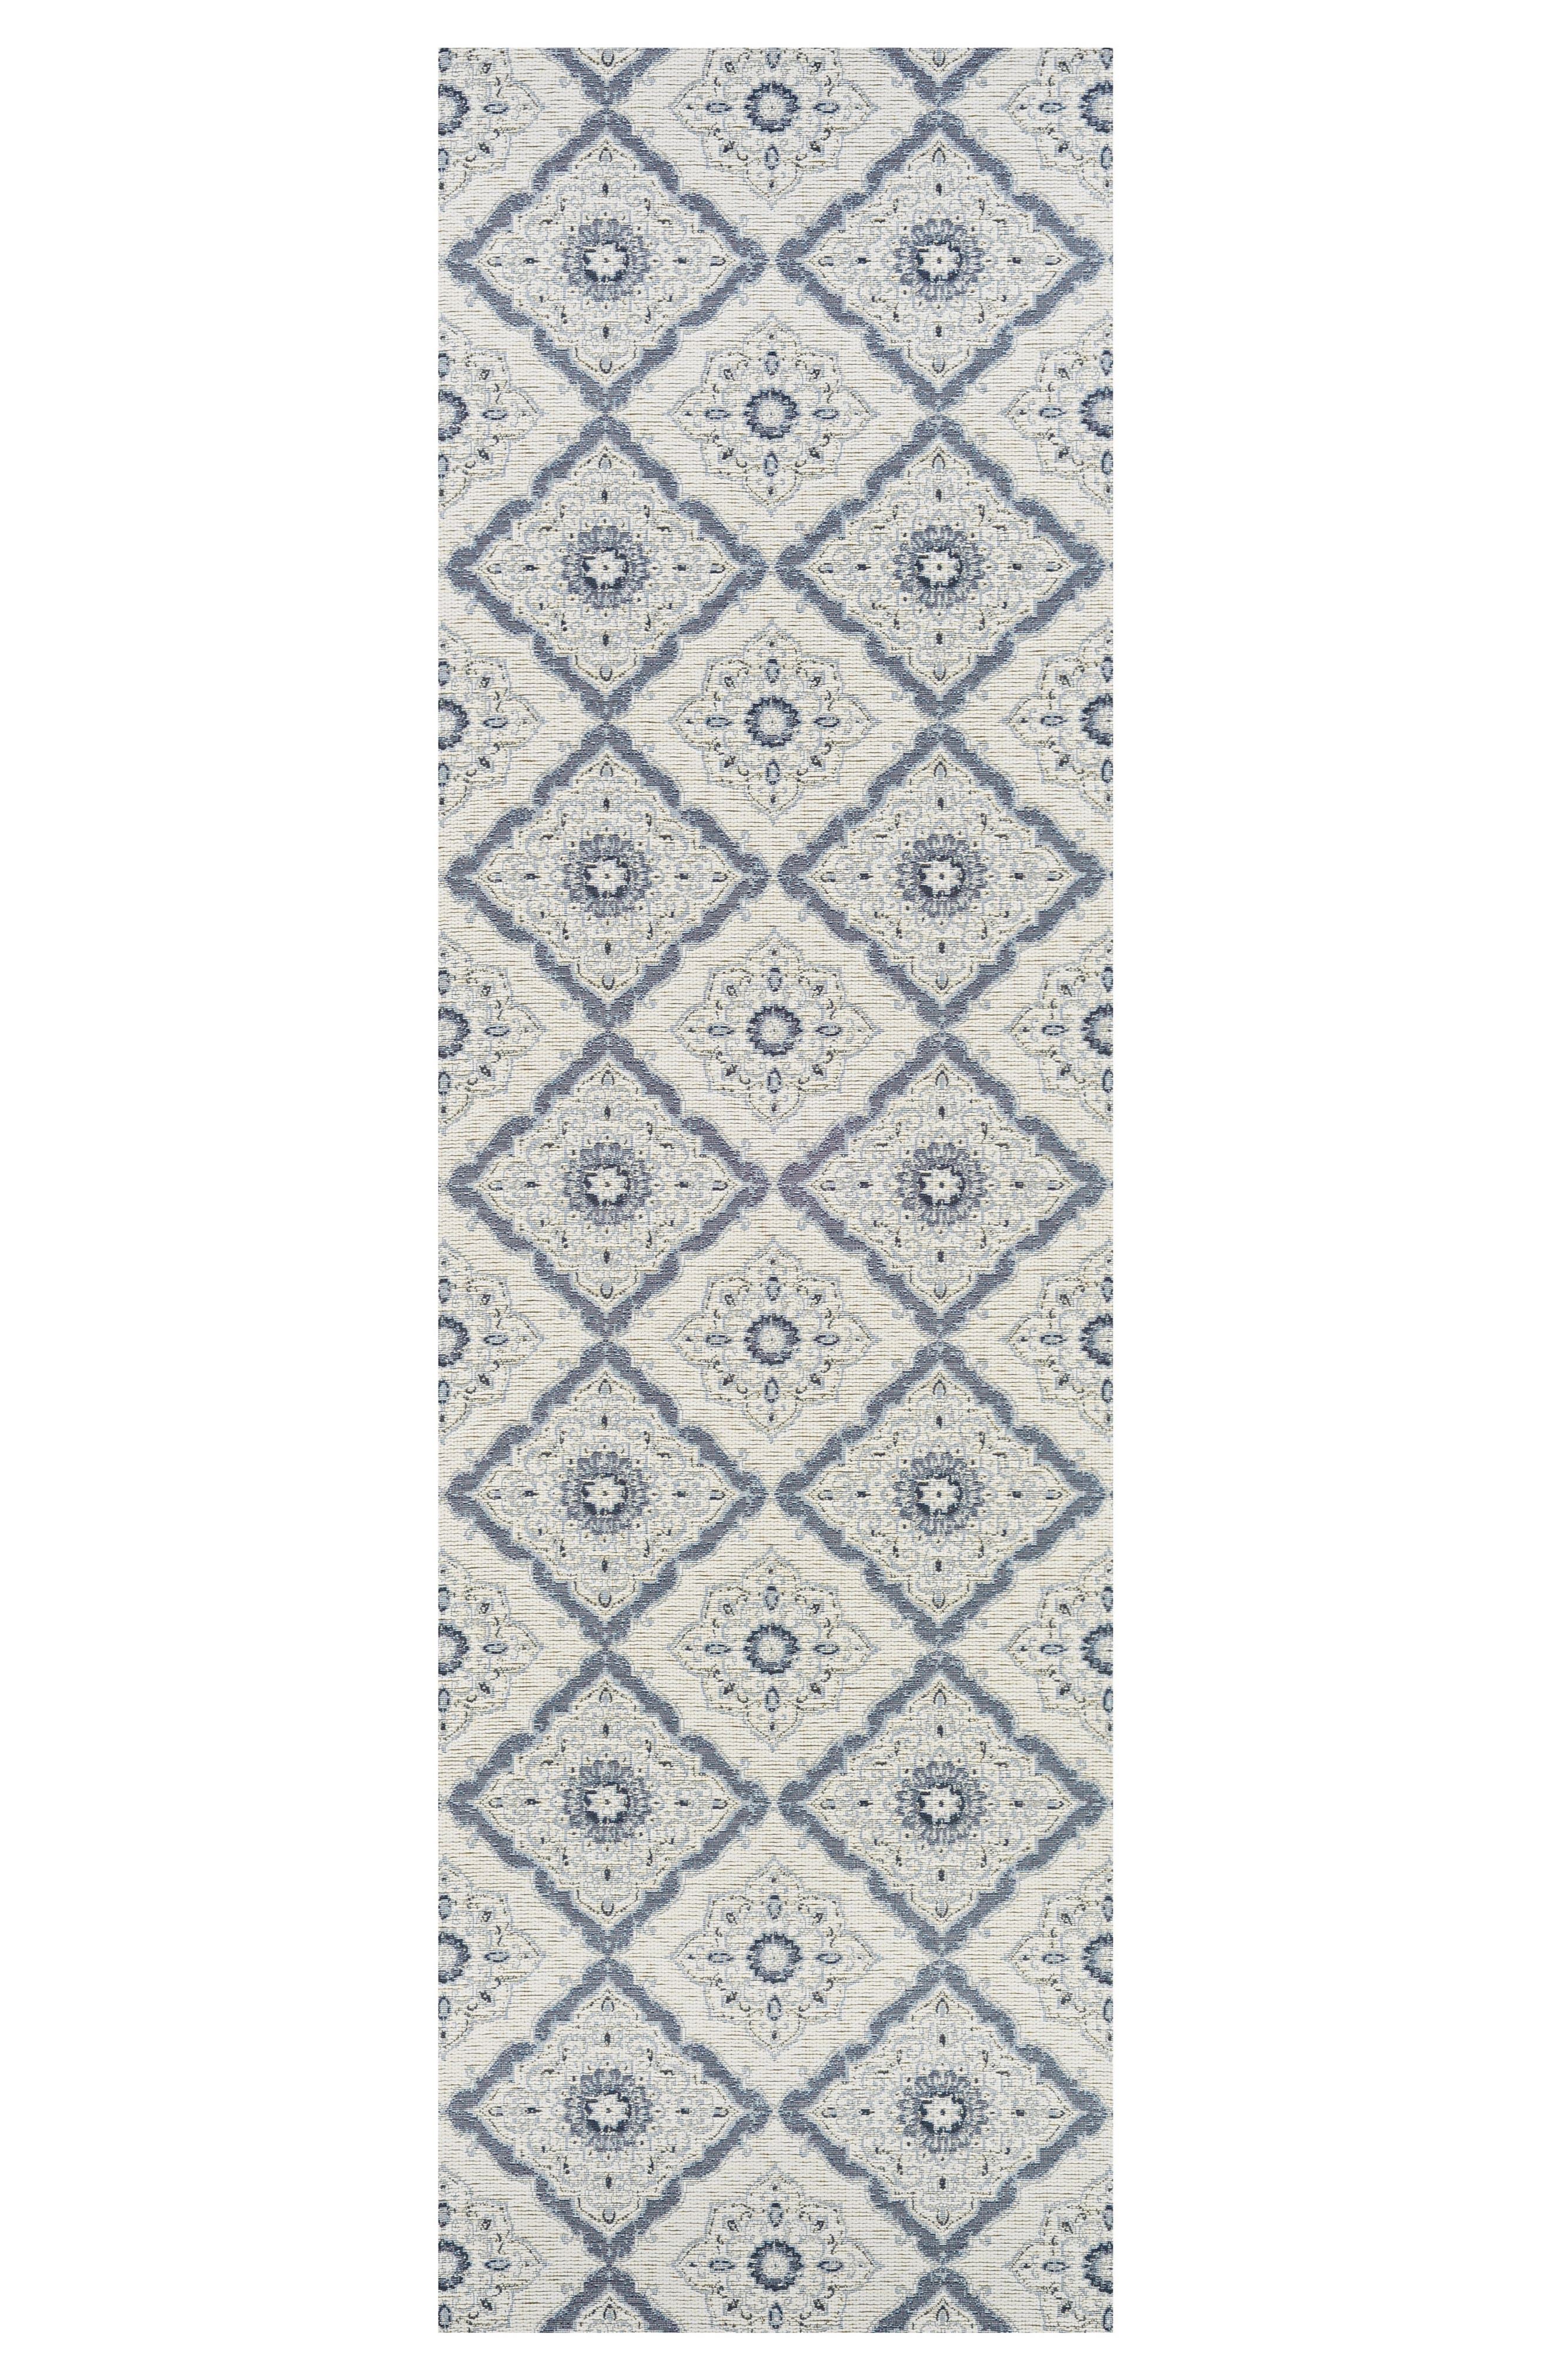 Brindisi Indoor/Outdoor Rug,                             Alternate thumbnail 2, color,                             Ivory/ Grey